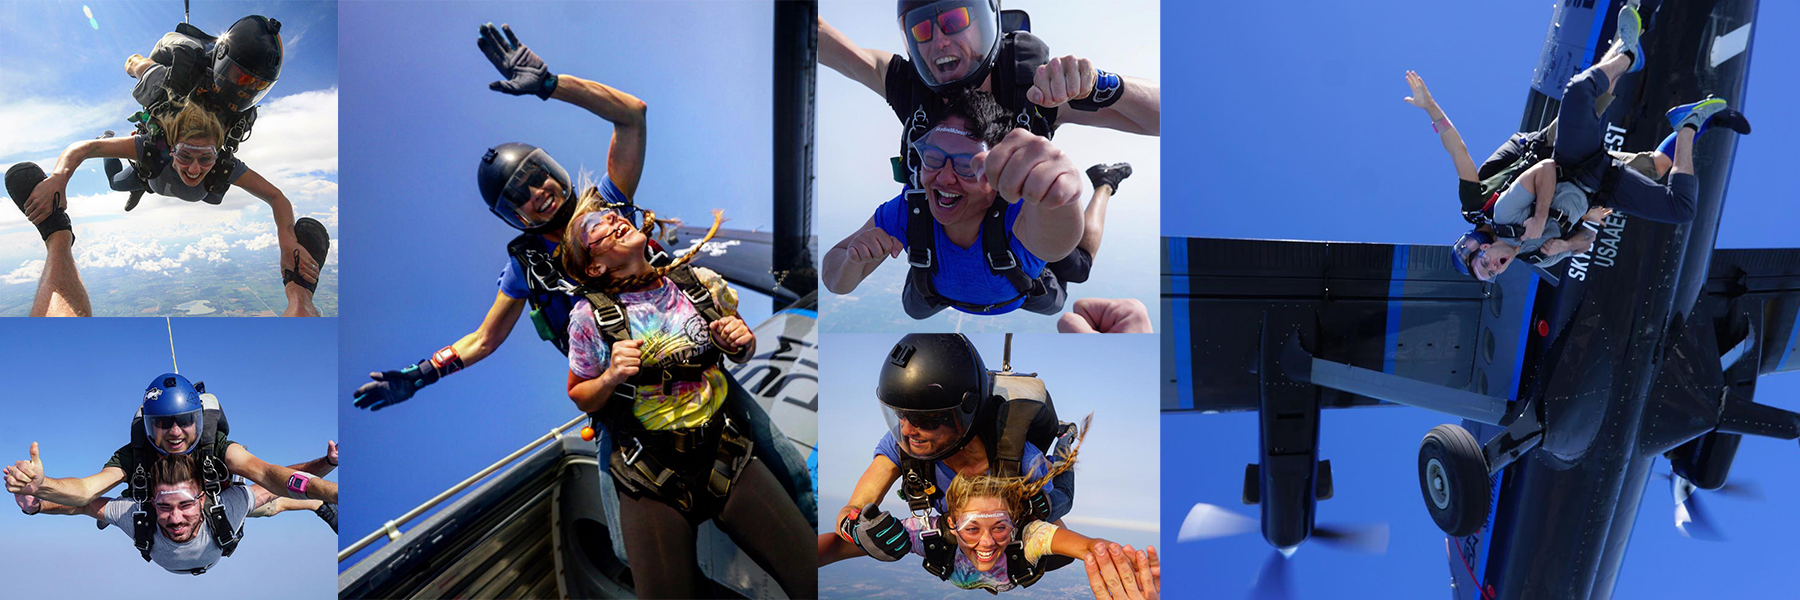 Skydive Midwest – Closest skydiving to Milwaukee and Chicago